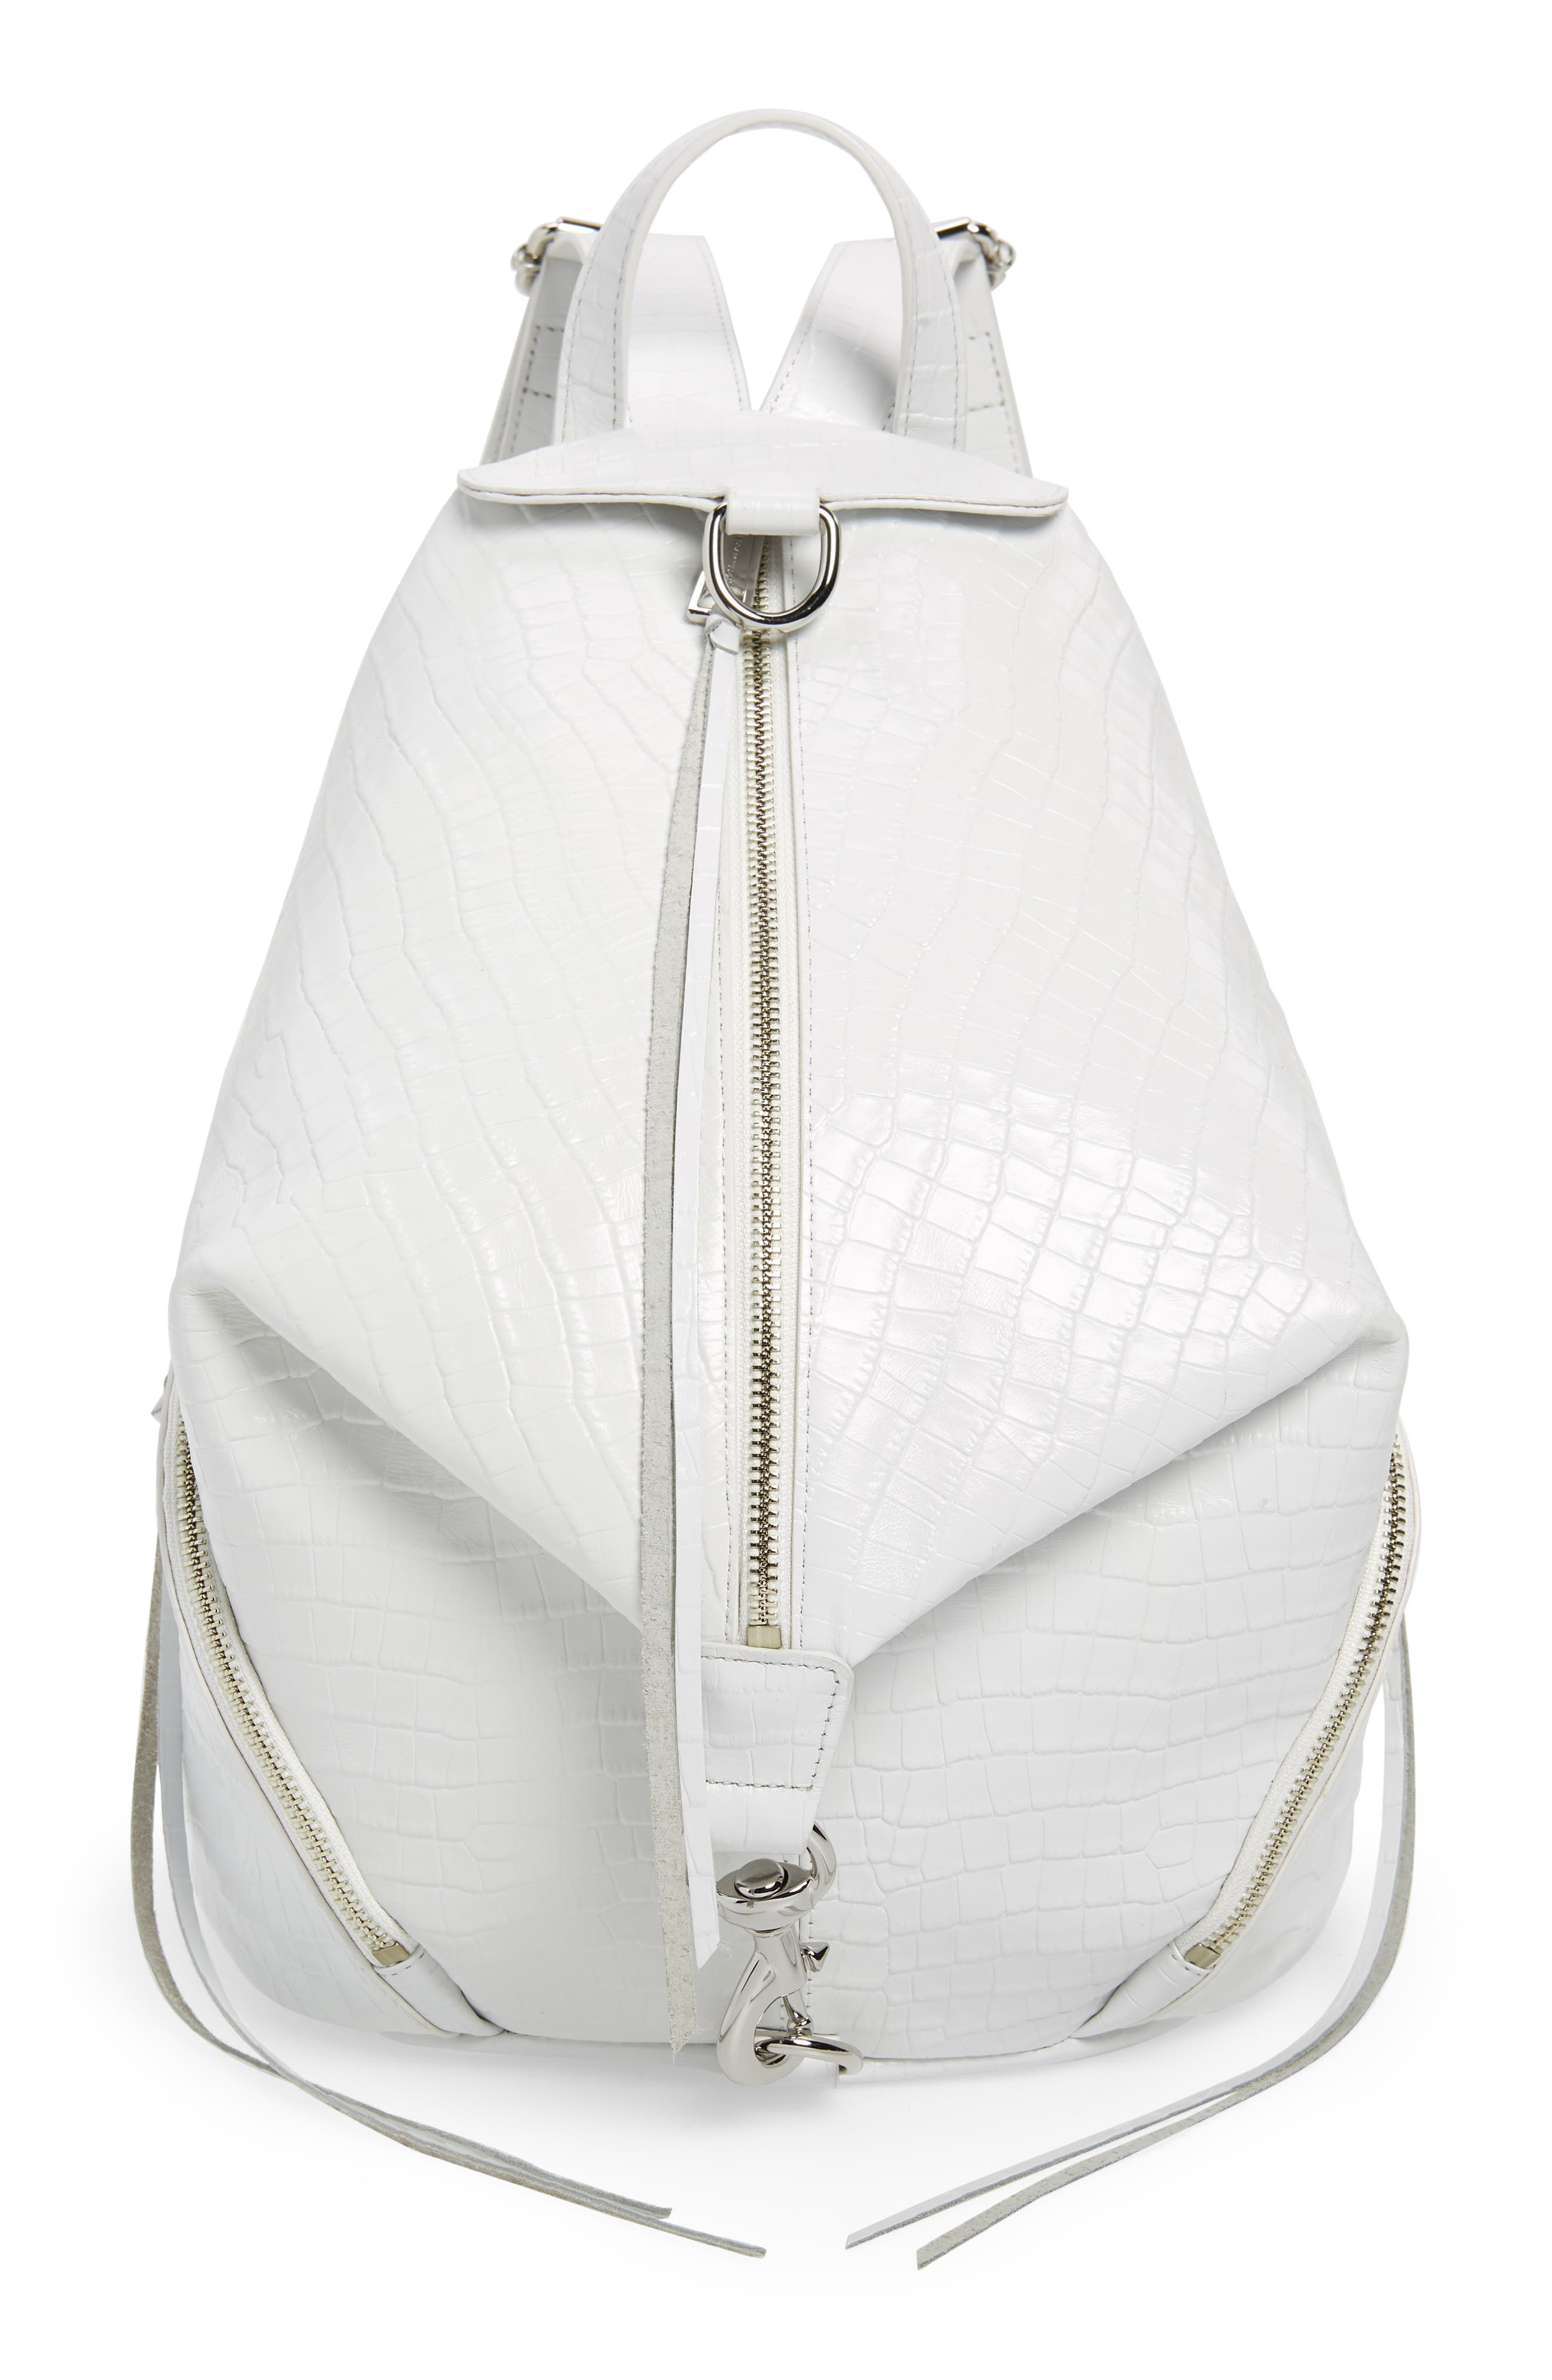 REBECCA MINKOFF, Julian Croc Embossed Leather Backpack, Main thumbnail 1, color, OPTIC WHITE